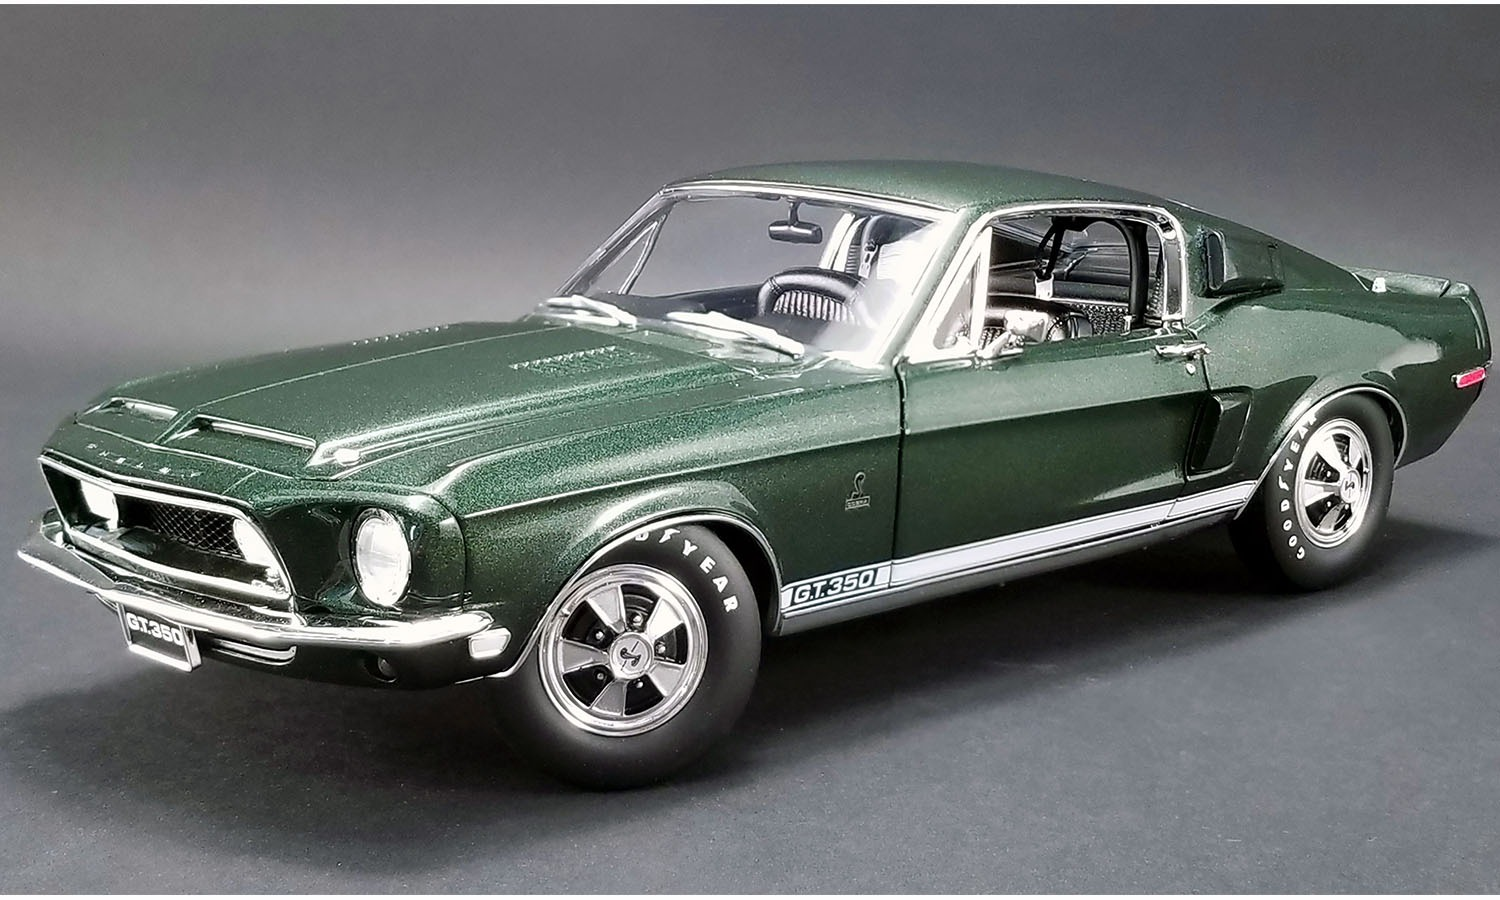 ACME 1:18 1968年モデル シェルビー マスタング GT350H Rent-A-Racer1968 Shelby Mustang GT350H Rent-A-Racer 1/18 by ACME